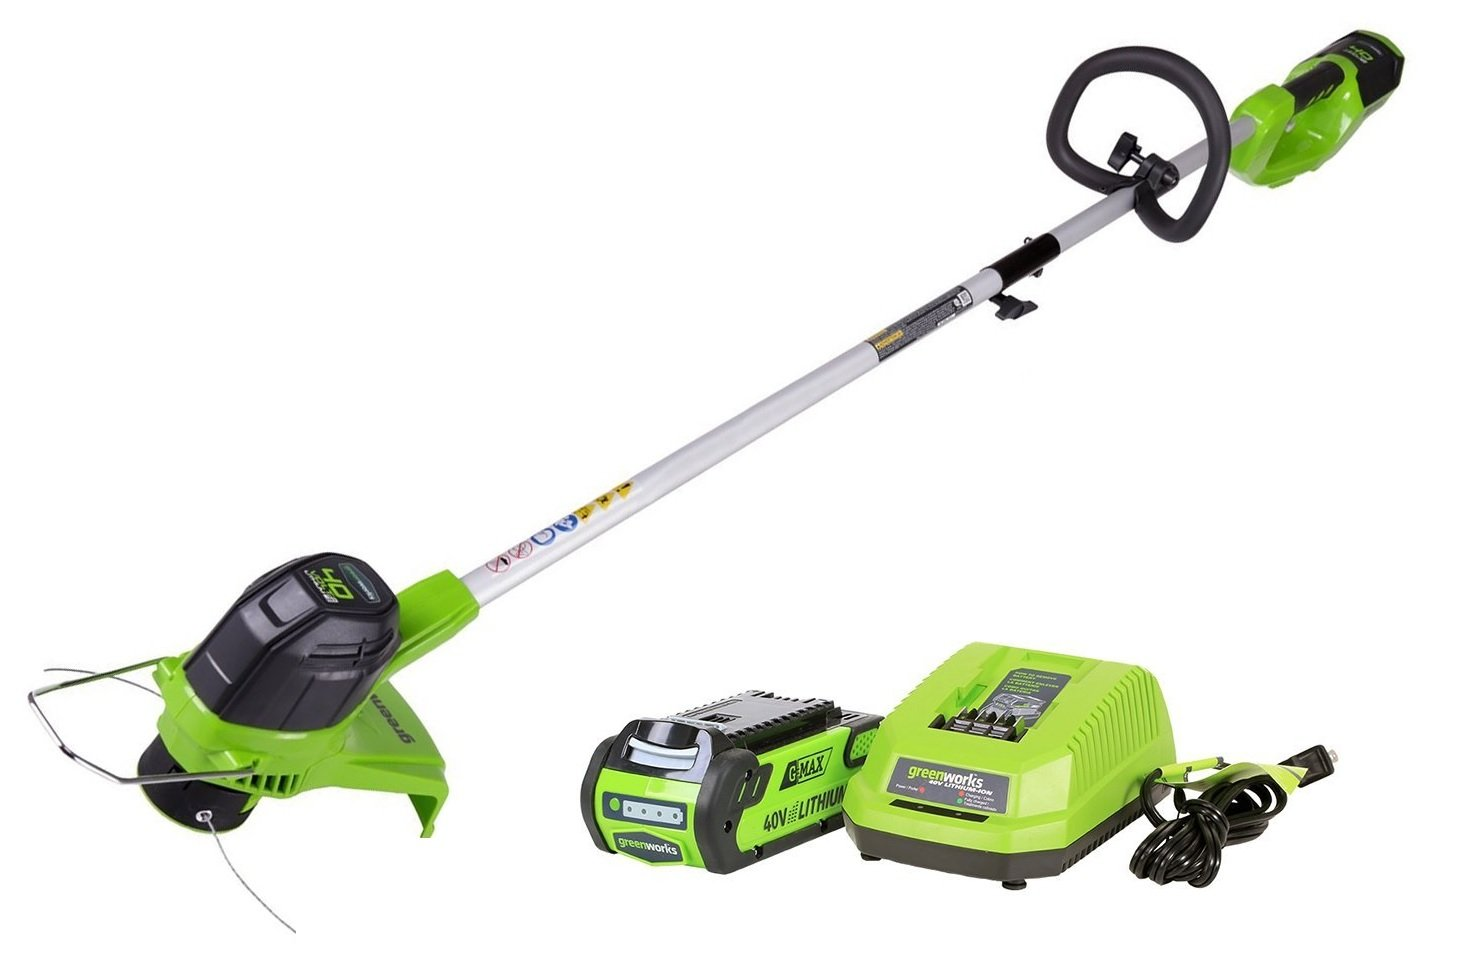 Greenworks Tools 21107 40V Lithium-Ion Cordless Grass Trimmer-30 cm, 21107UA with Universal Charger String Trimmer, Green